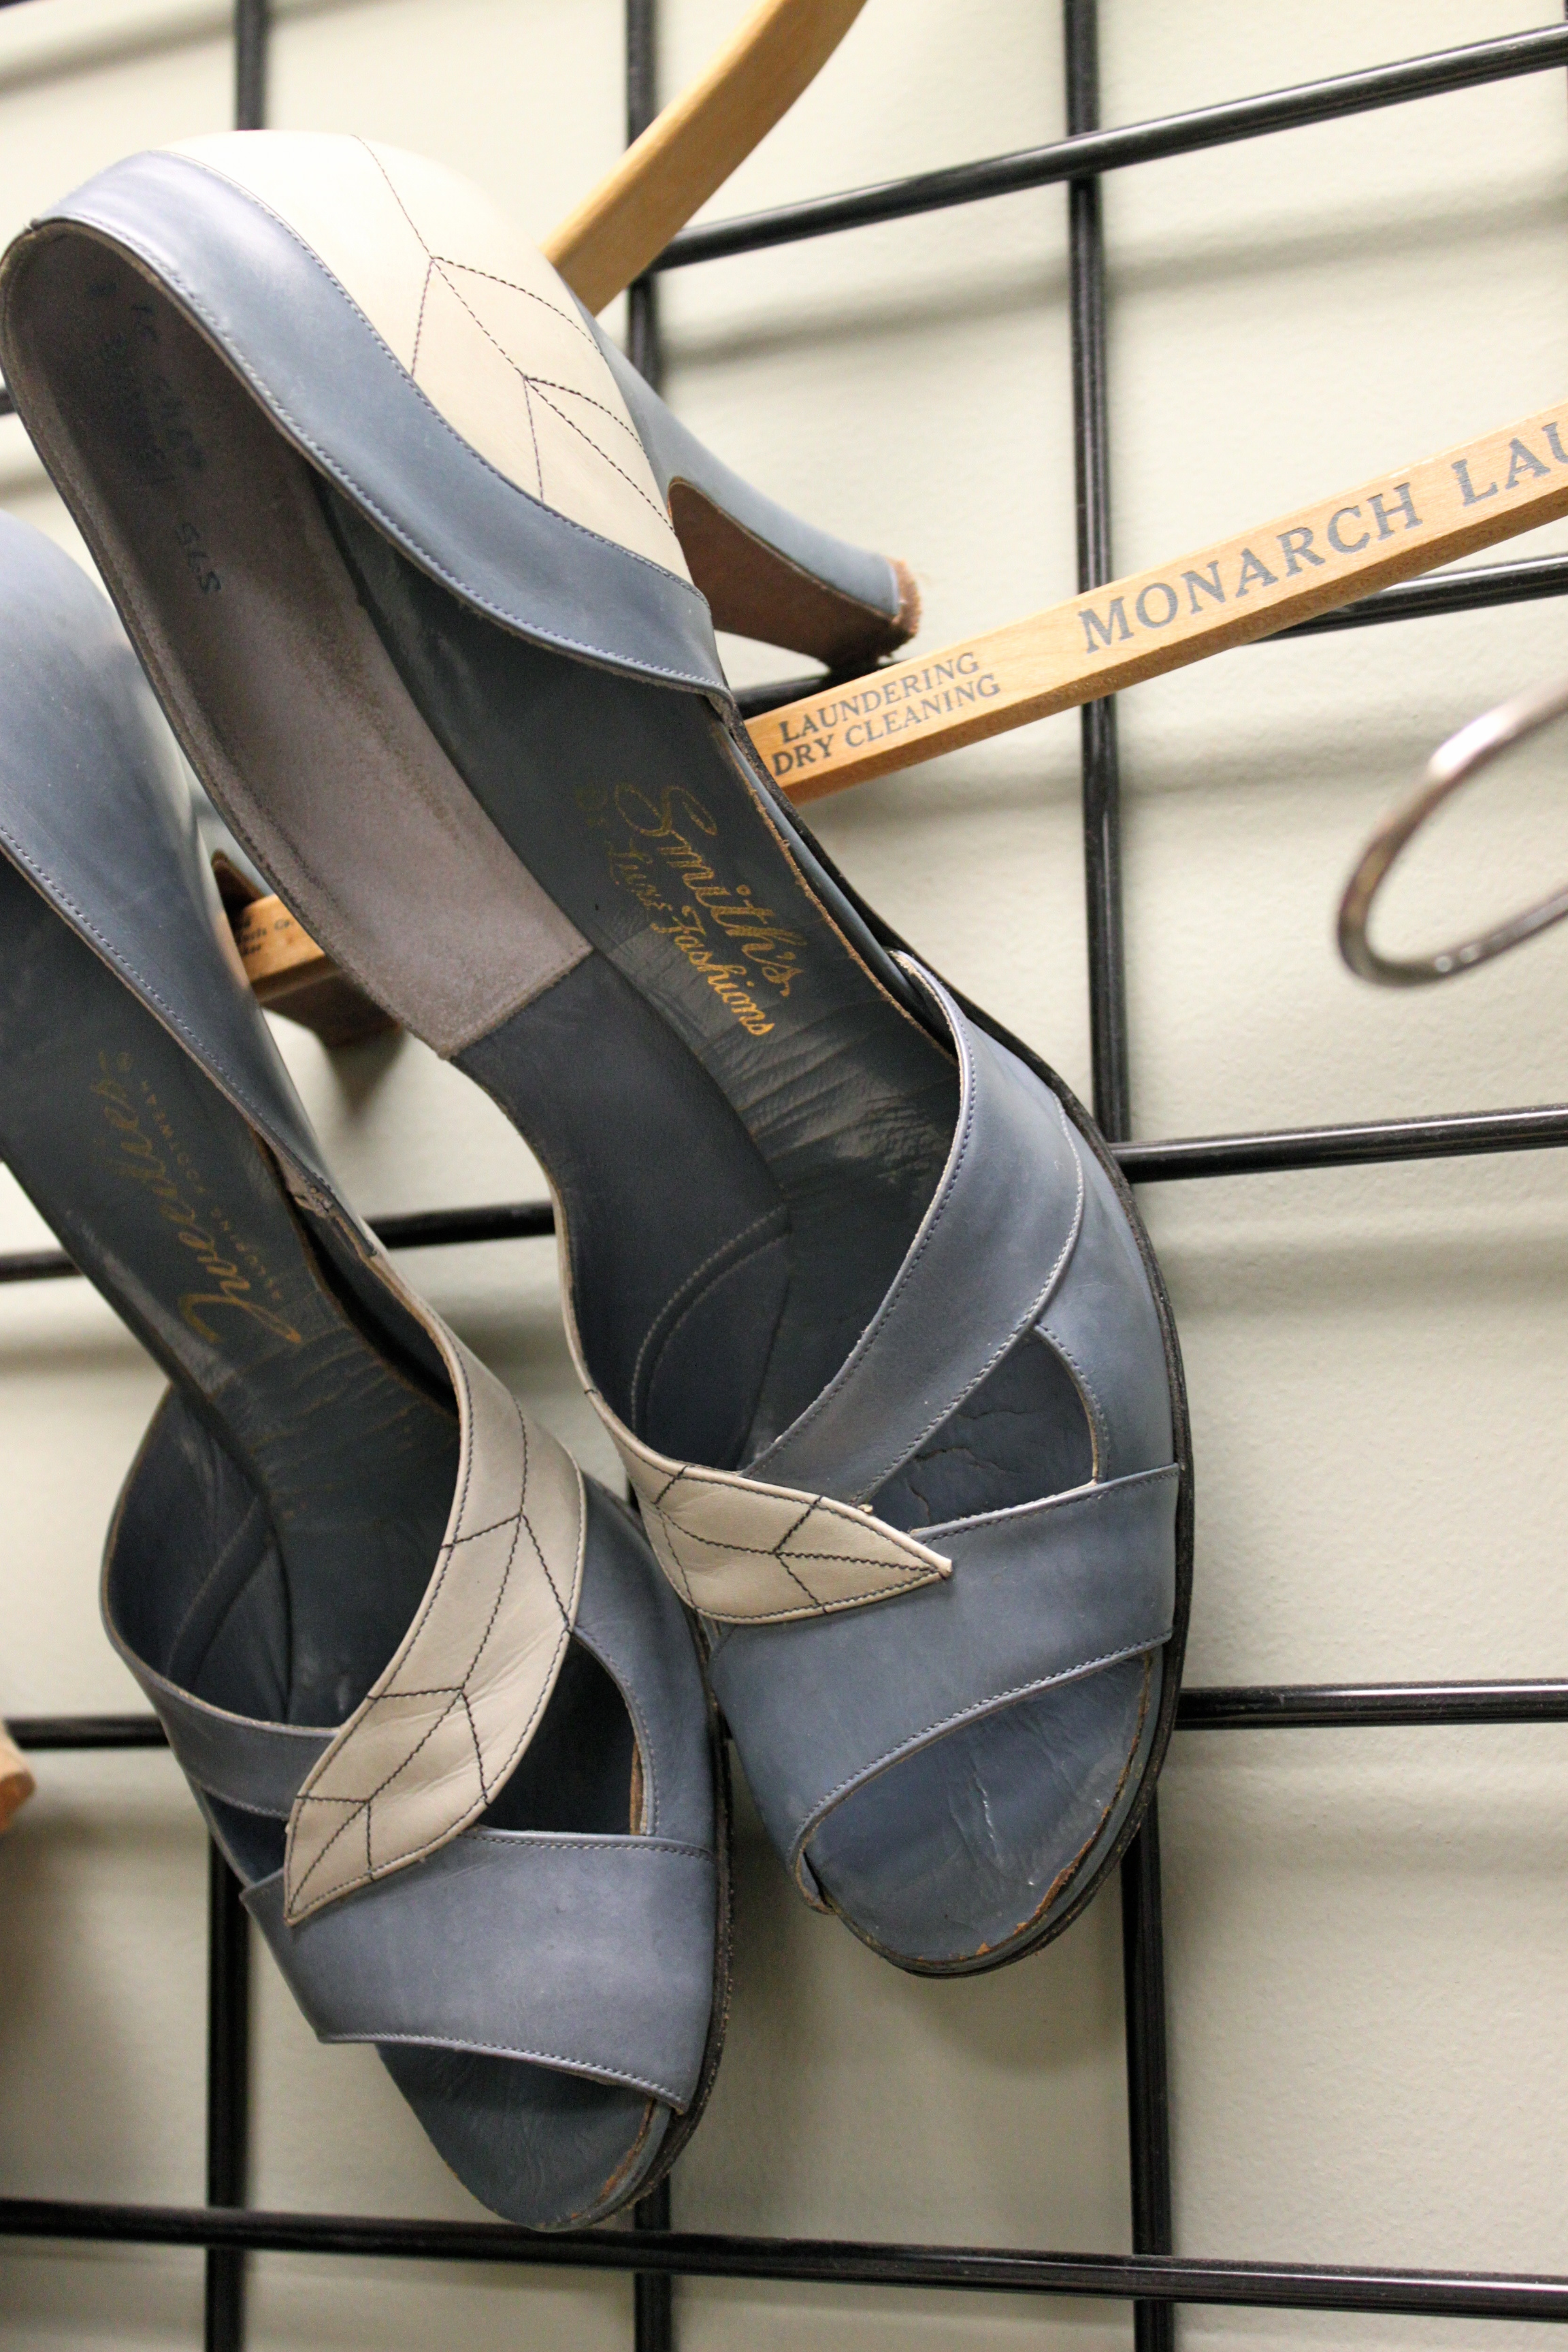 Clever way to display a great pair of pumps.